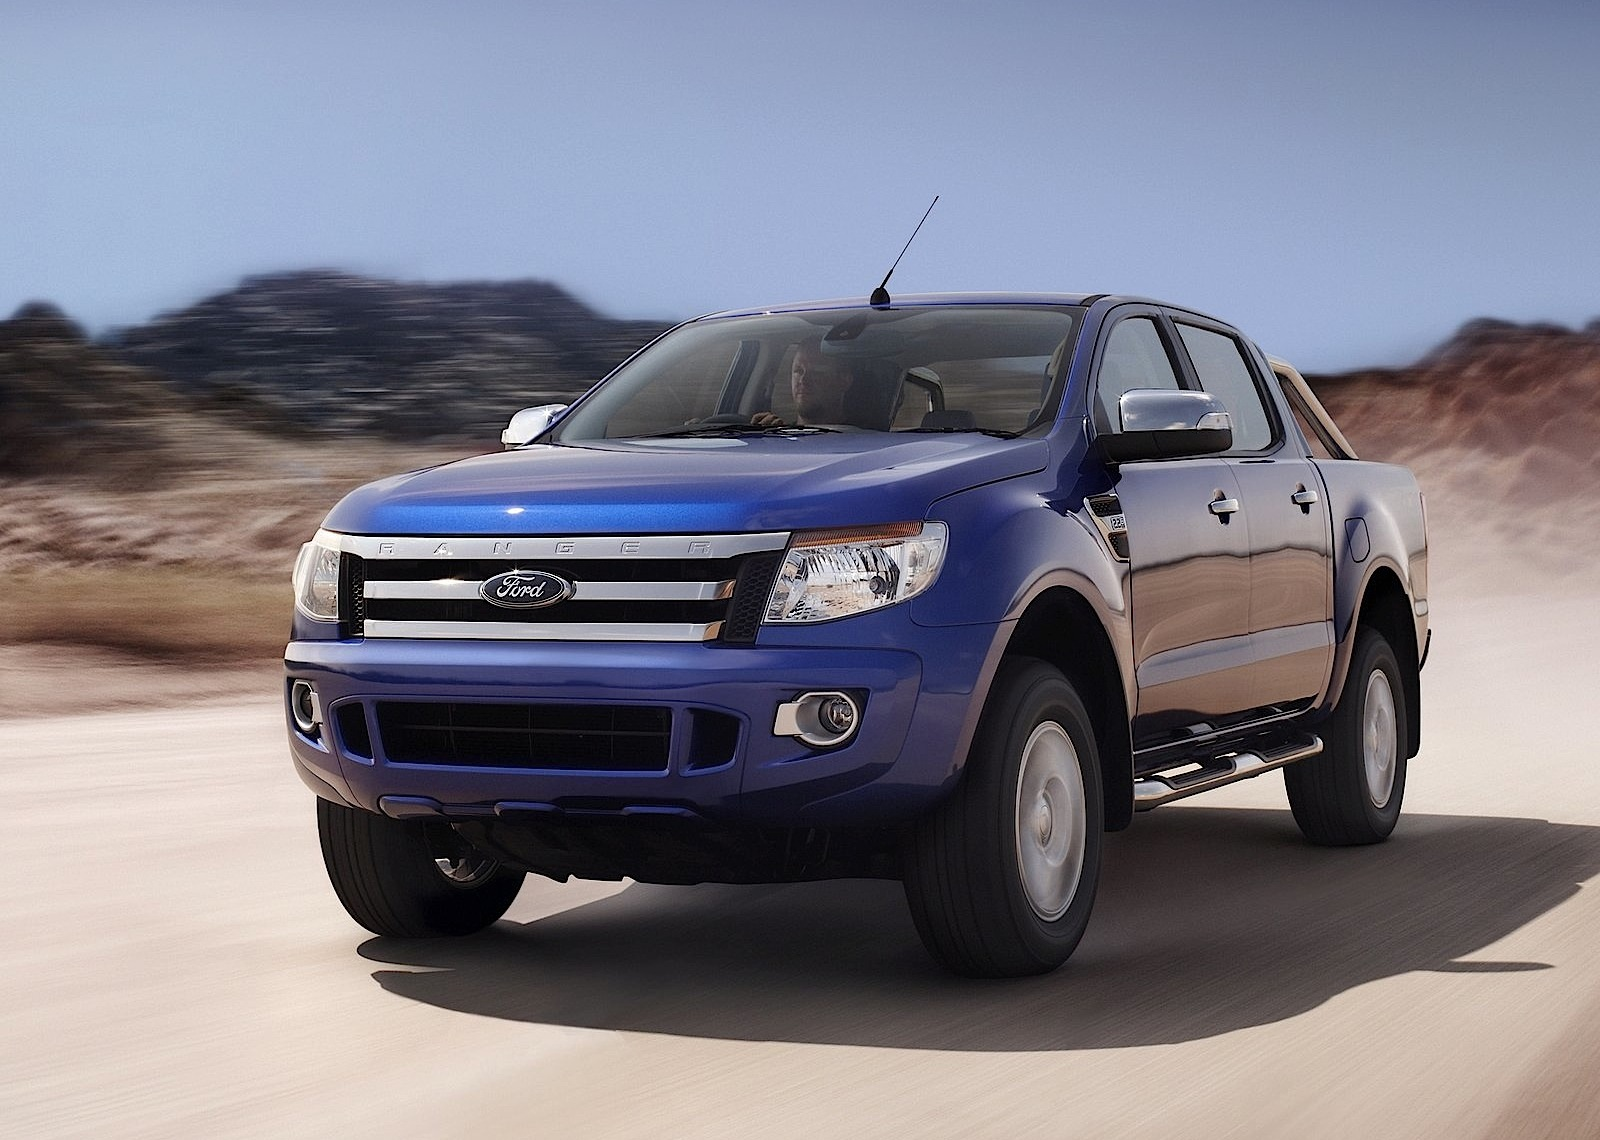 ford ranger double cab 2011 2012 2013 2014 2015. Black Bedroom Furniture Sets. Home Design Ideas